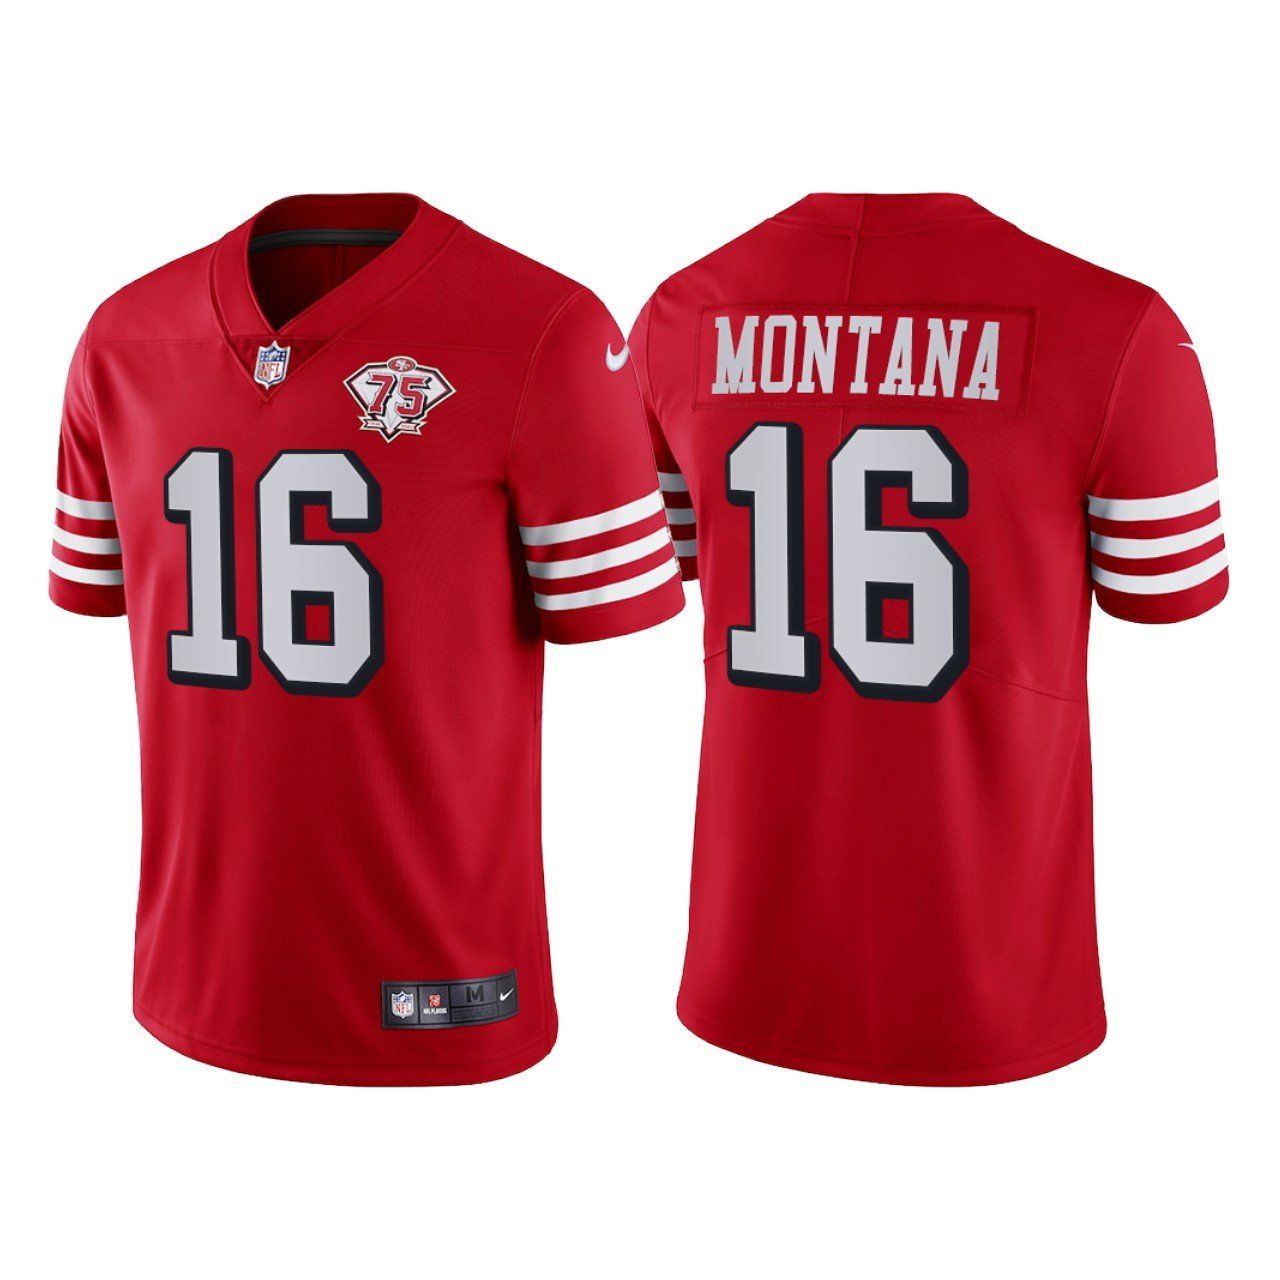 Men's #16 Joe Montana San Francisco 49ers Red Throwback Limited Jersey 75th Anniversary Stitched